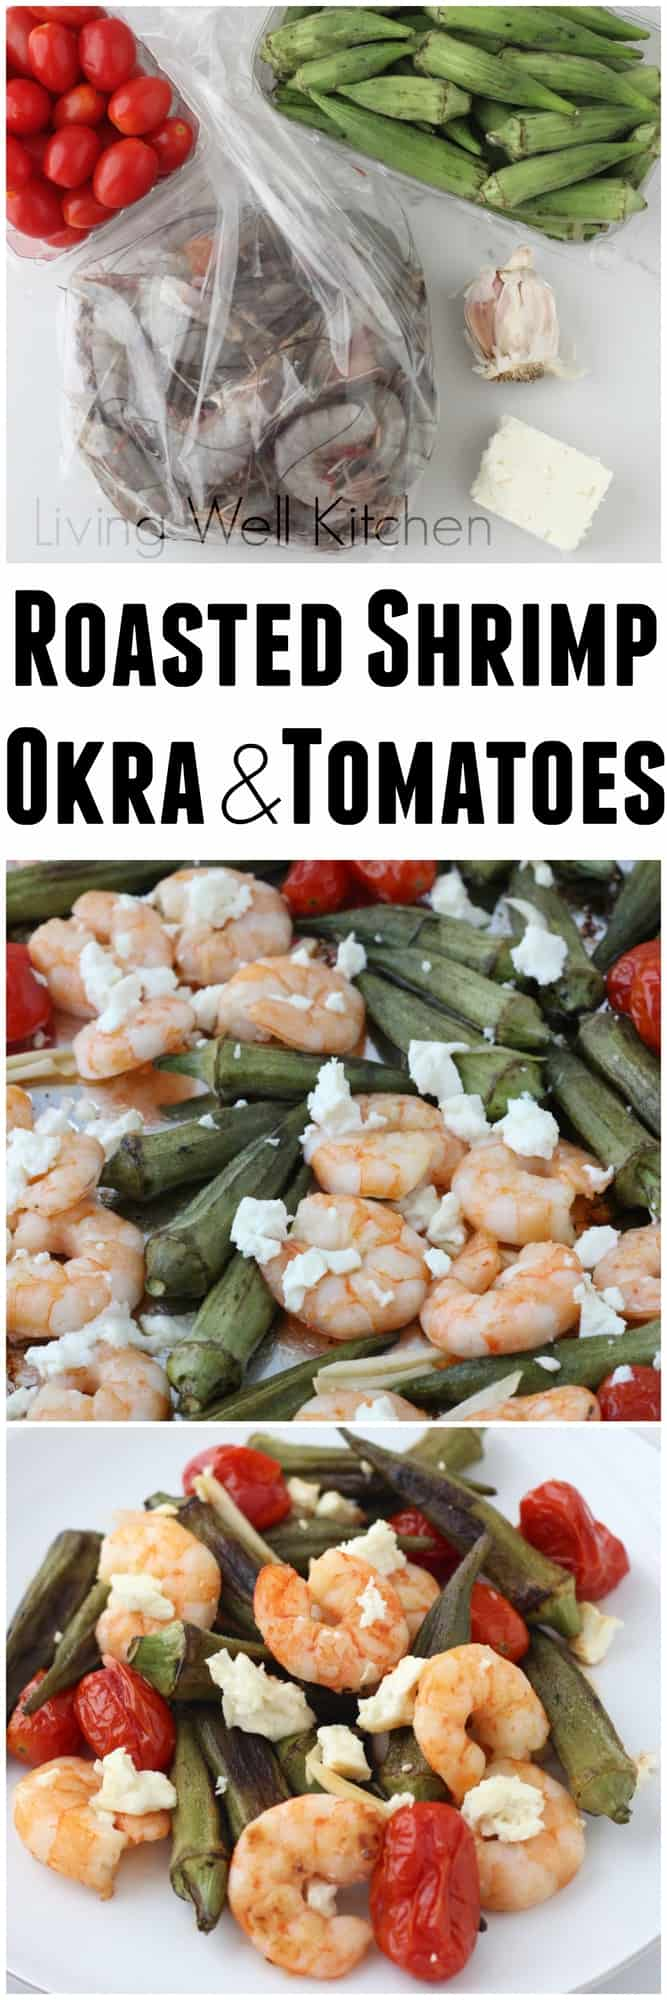 You only need seven summer ingredients for this easy & tasty one pan meal ~ Roasted Shrimp Okra and Tomatoes from Living Well Kitchen @memeinge